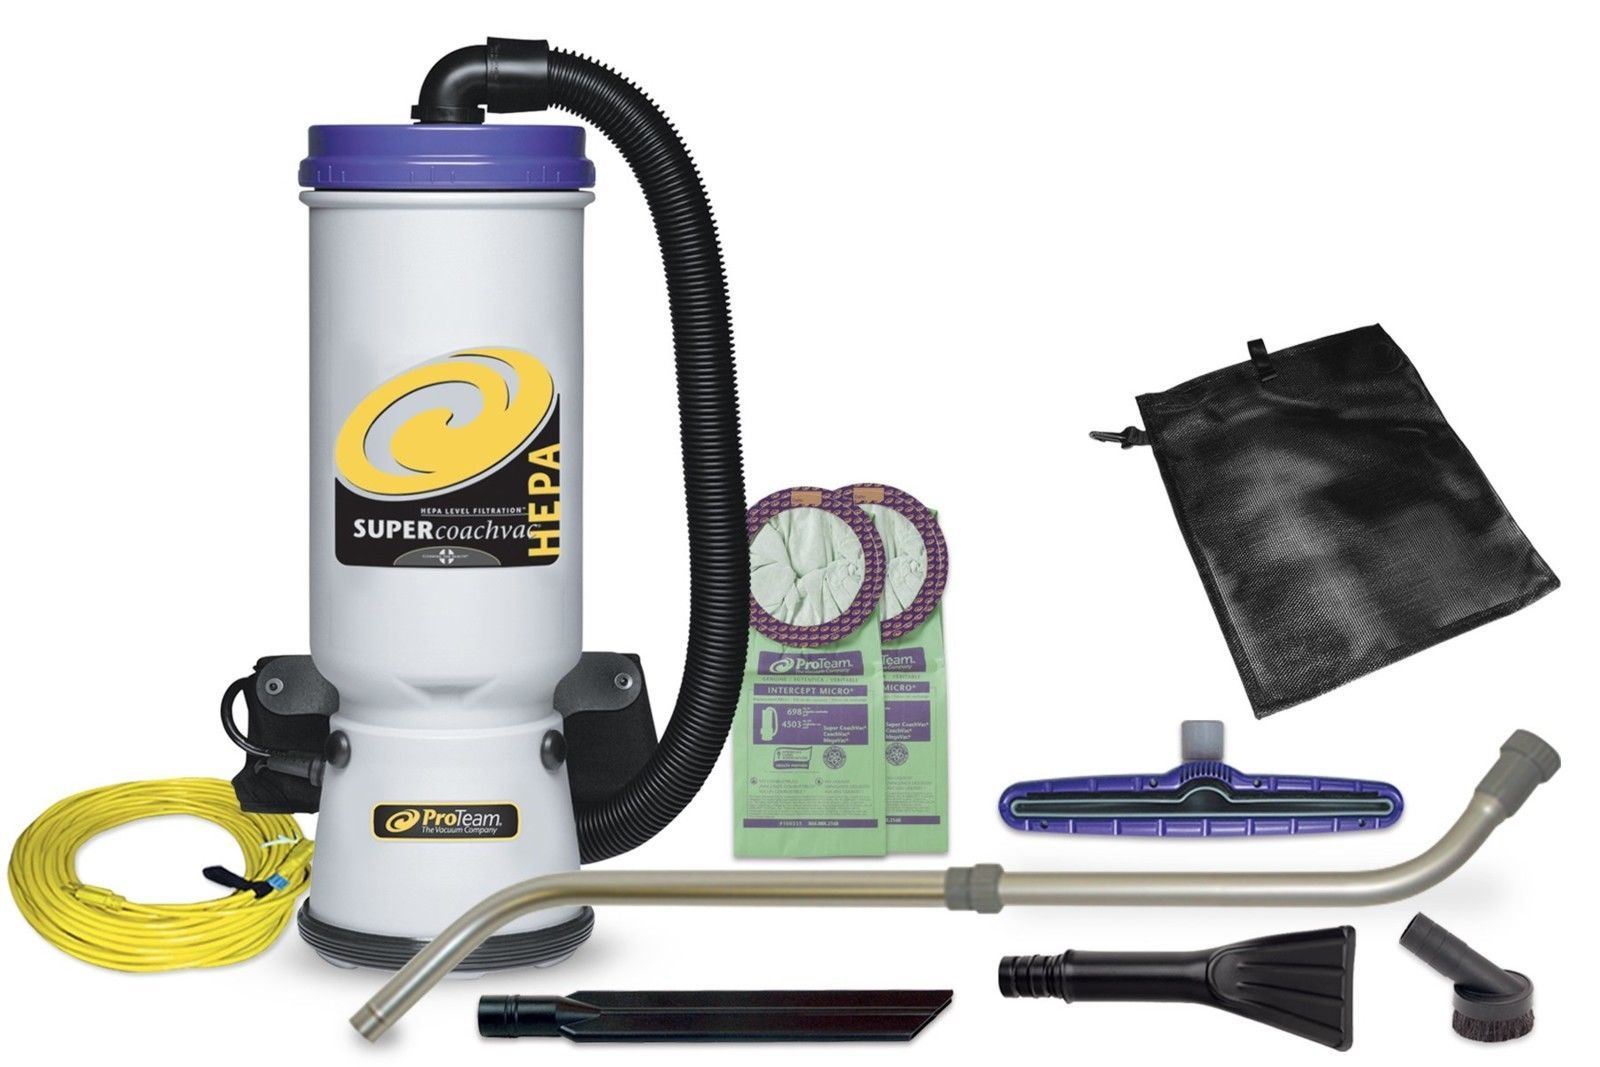 ProTeam Backpack Vacuums Super CoachVac Commercial